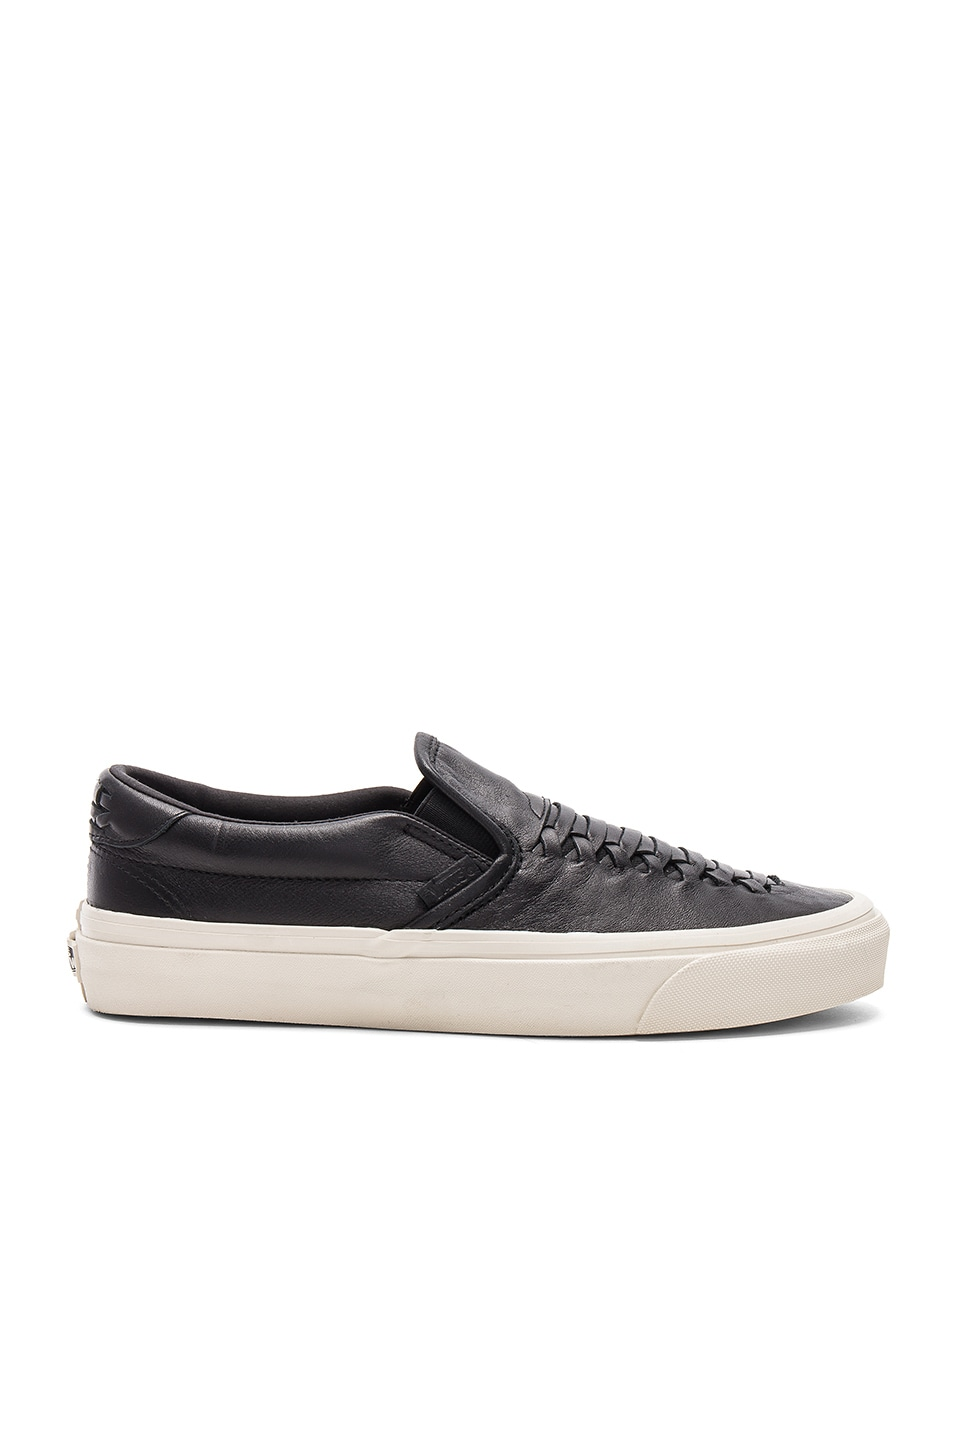 Classic Slip On Weave DX by Vans